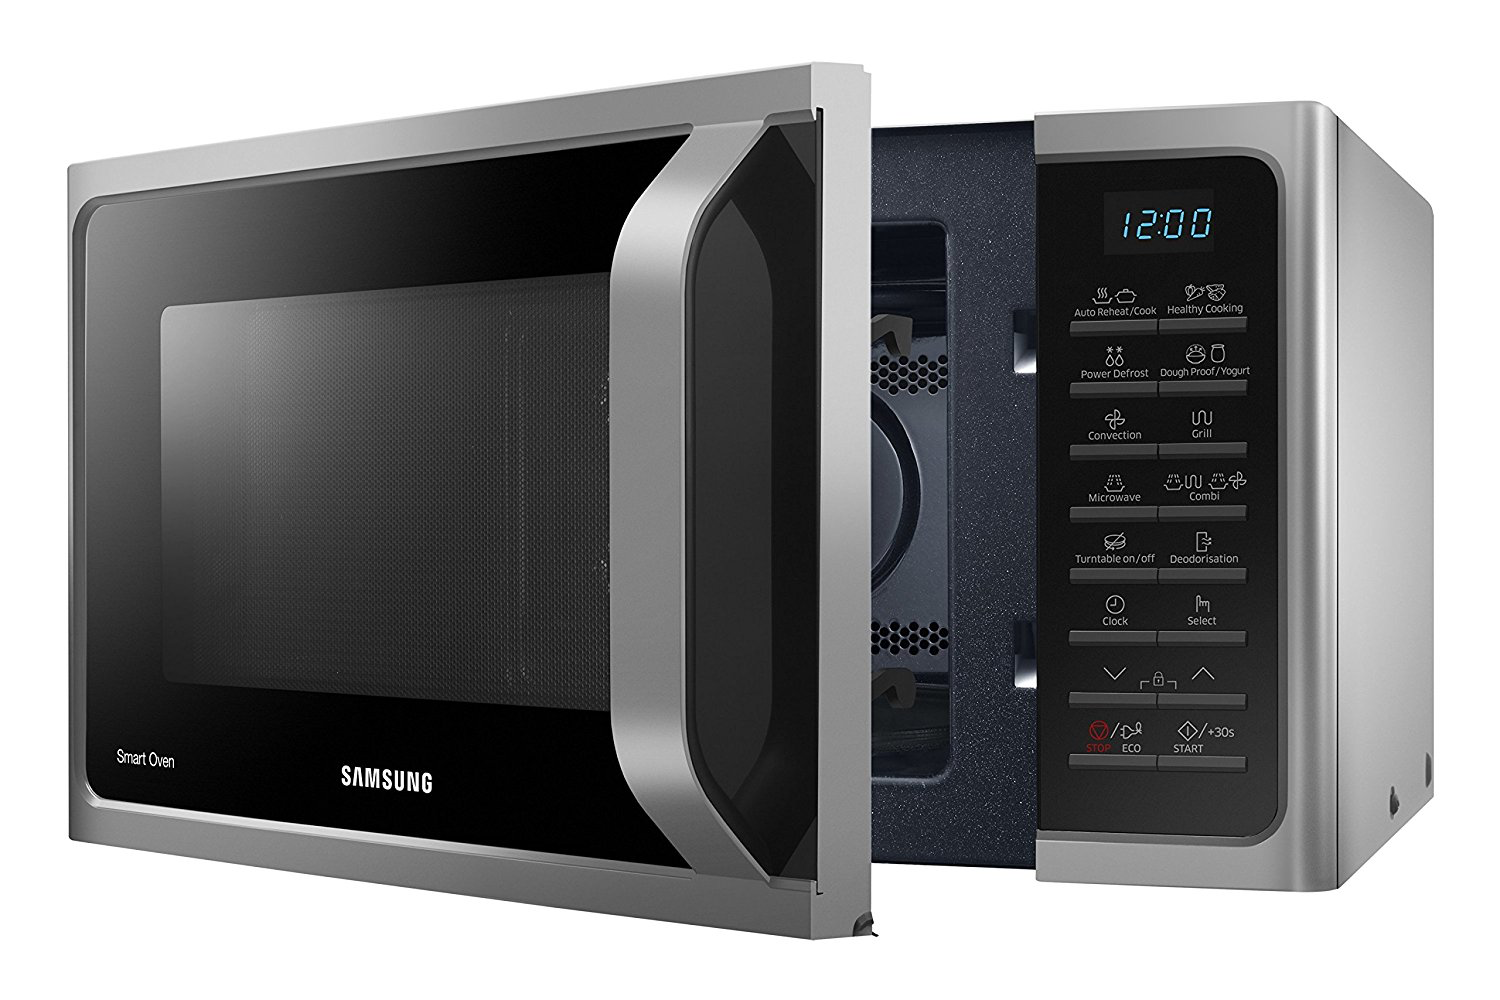 Samsung MC28H5015CS Forno a Microonde in offerta lampo a 111,34 ...